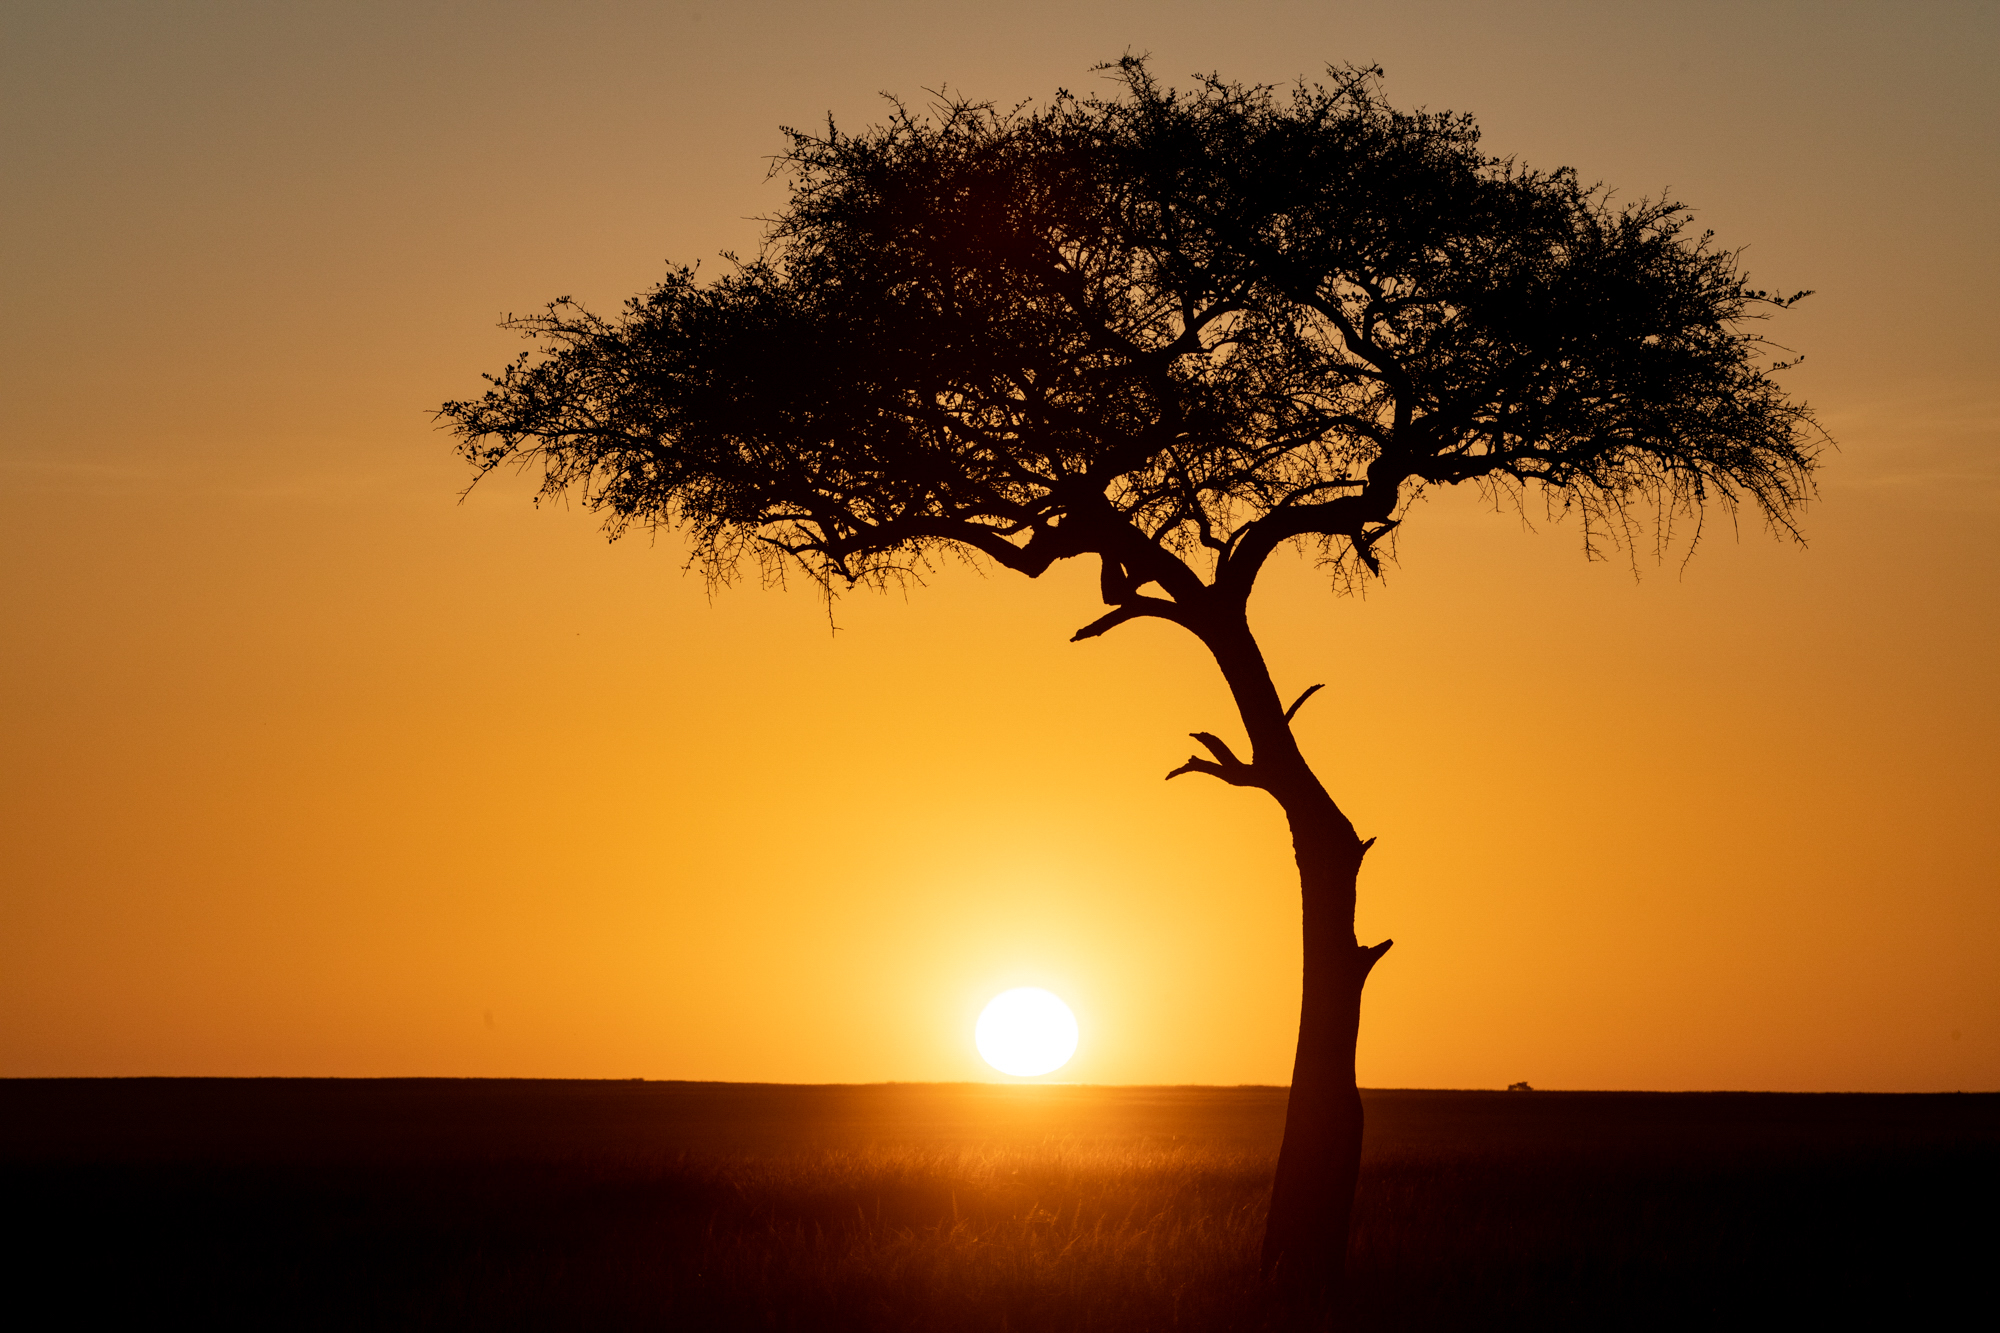 Kenya Rekero Sunset Steve Winter